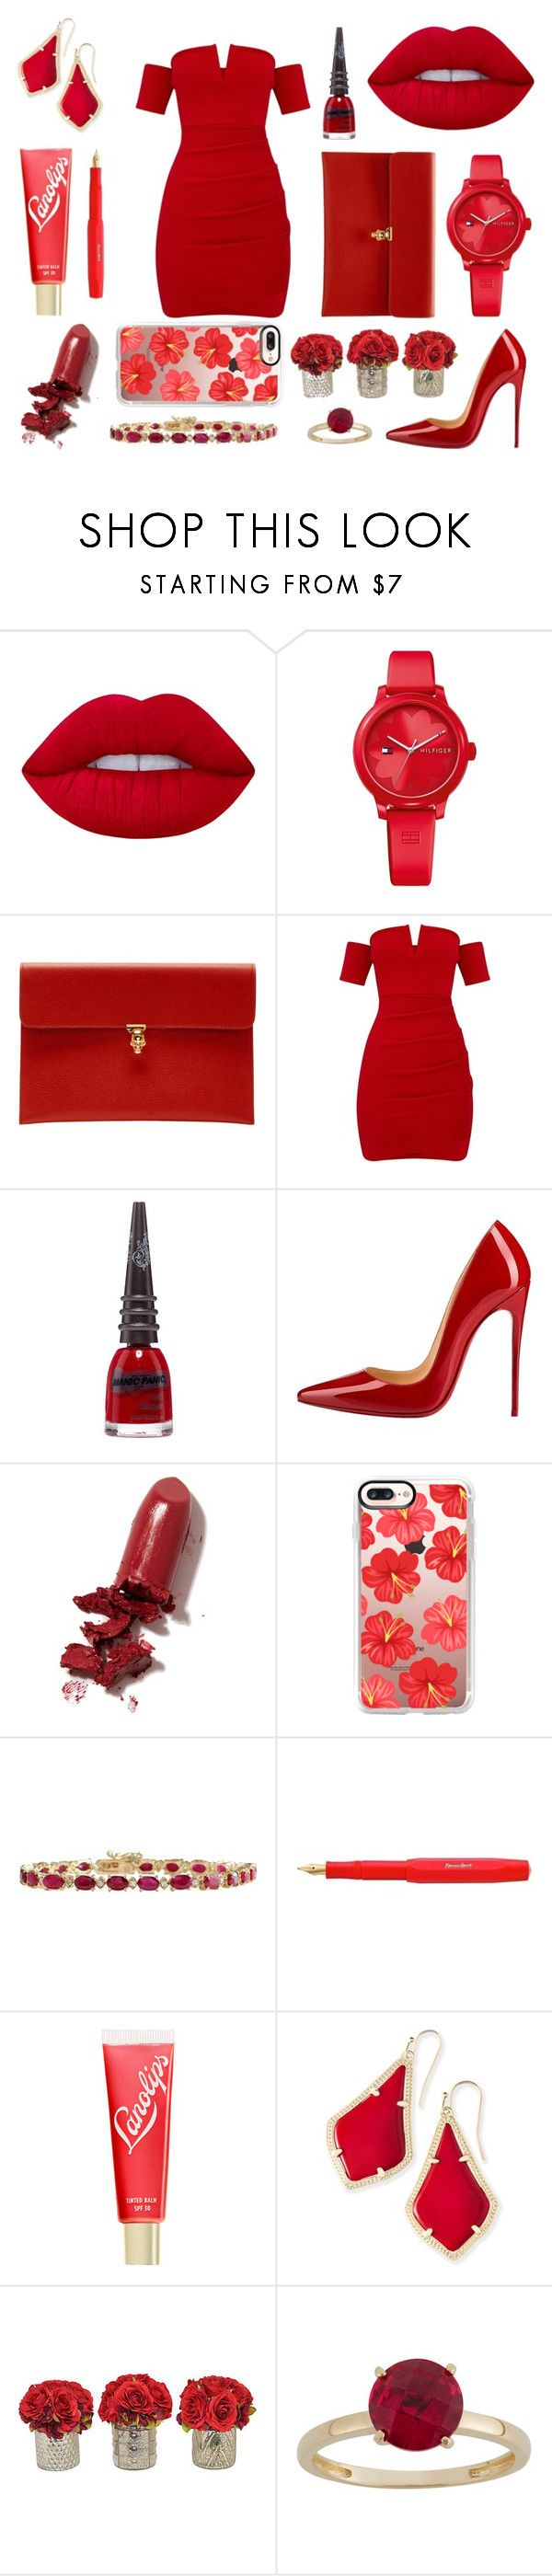 """Red!"" by marinette28 ❤ liked on Polyvore featuring Lime Crime, Tommy Hilfiger, Alexander McQueen, Manic Panic NYC, Christian Louboutin, LAQA & Co., Casetify, Lano, Kendra Scott and The French Bee"